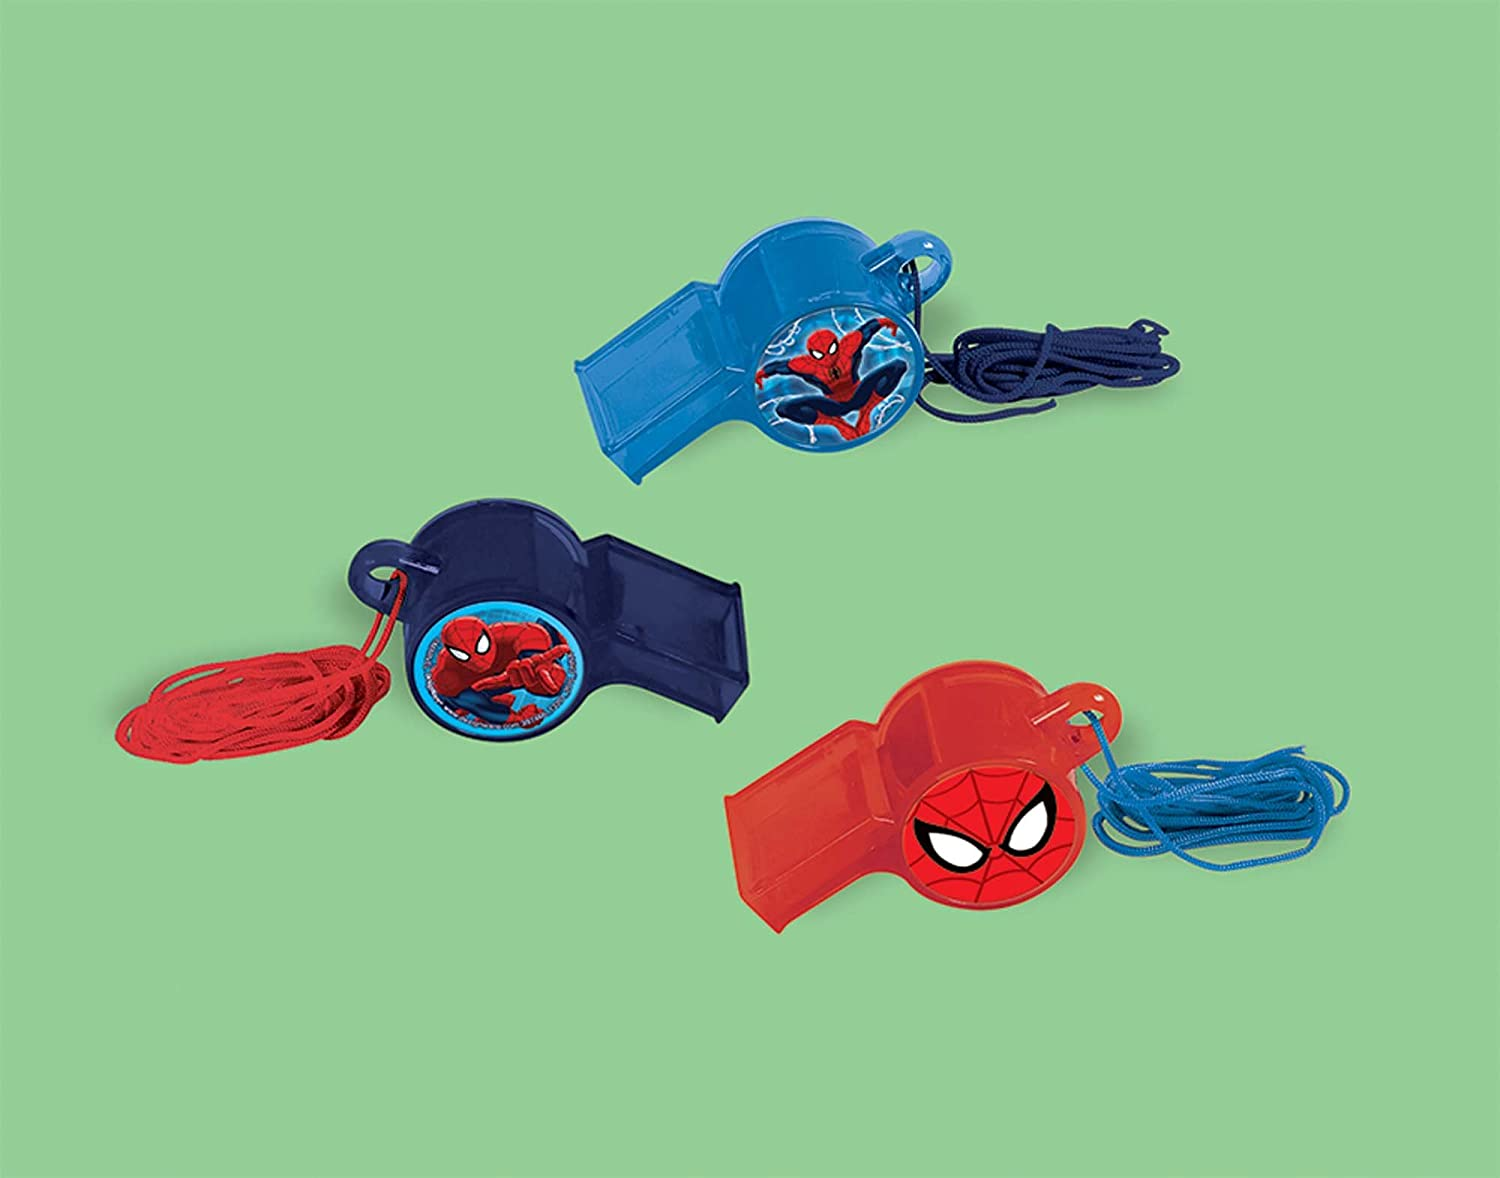 Amscan 397466 Marvel Spider-Man Whistle | Party Favor | 1 piece